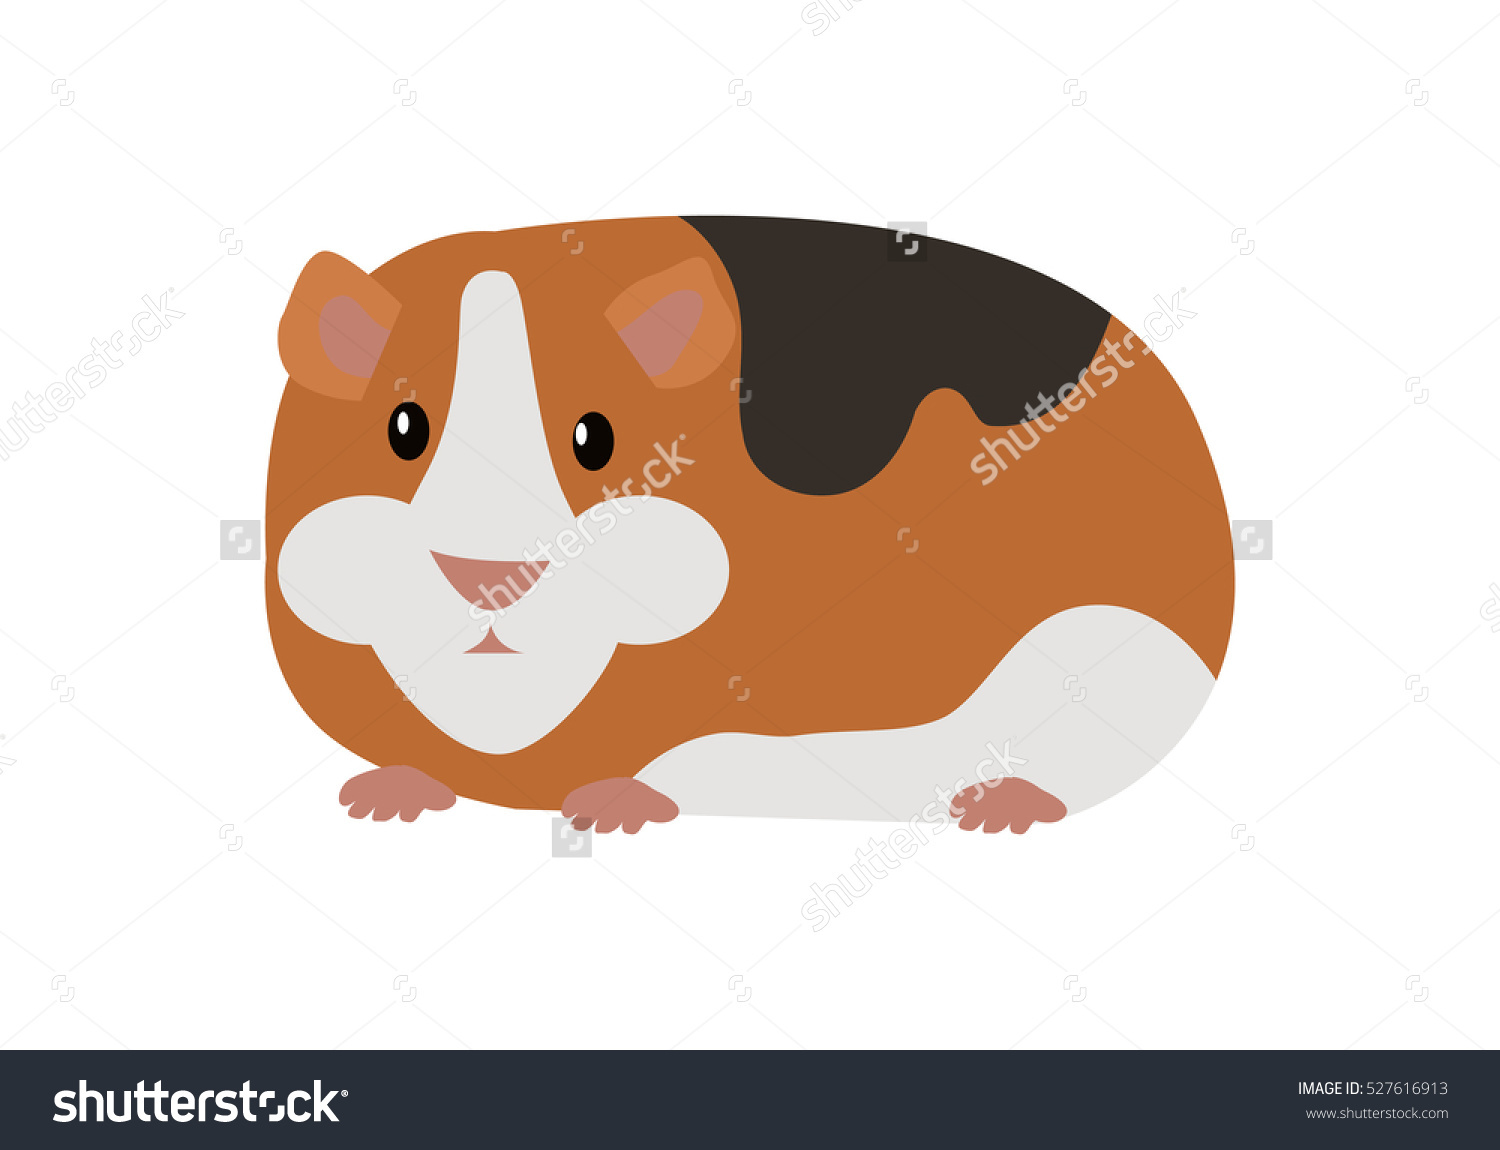 Guinea Pig Cavia Porcellus Cavy Domestic Stock Vector 527616913.